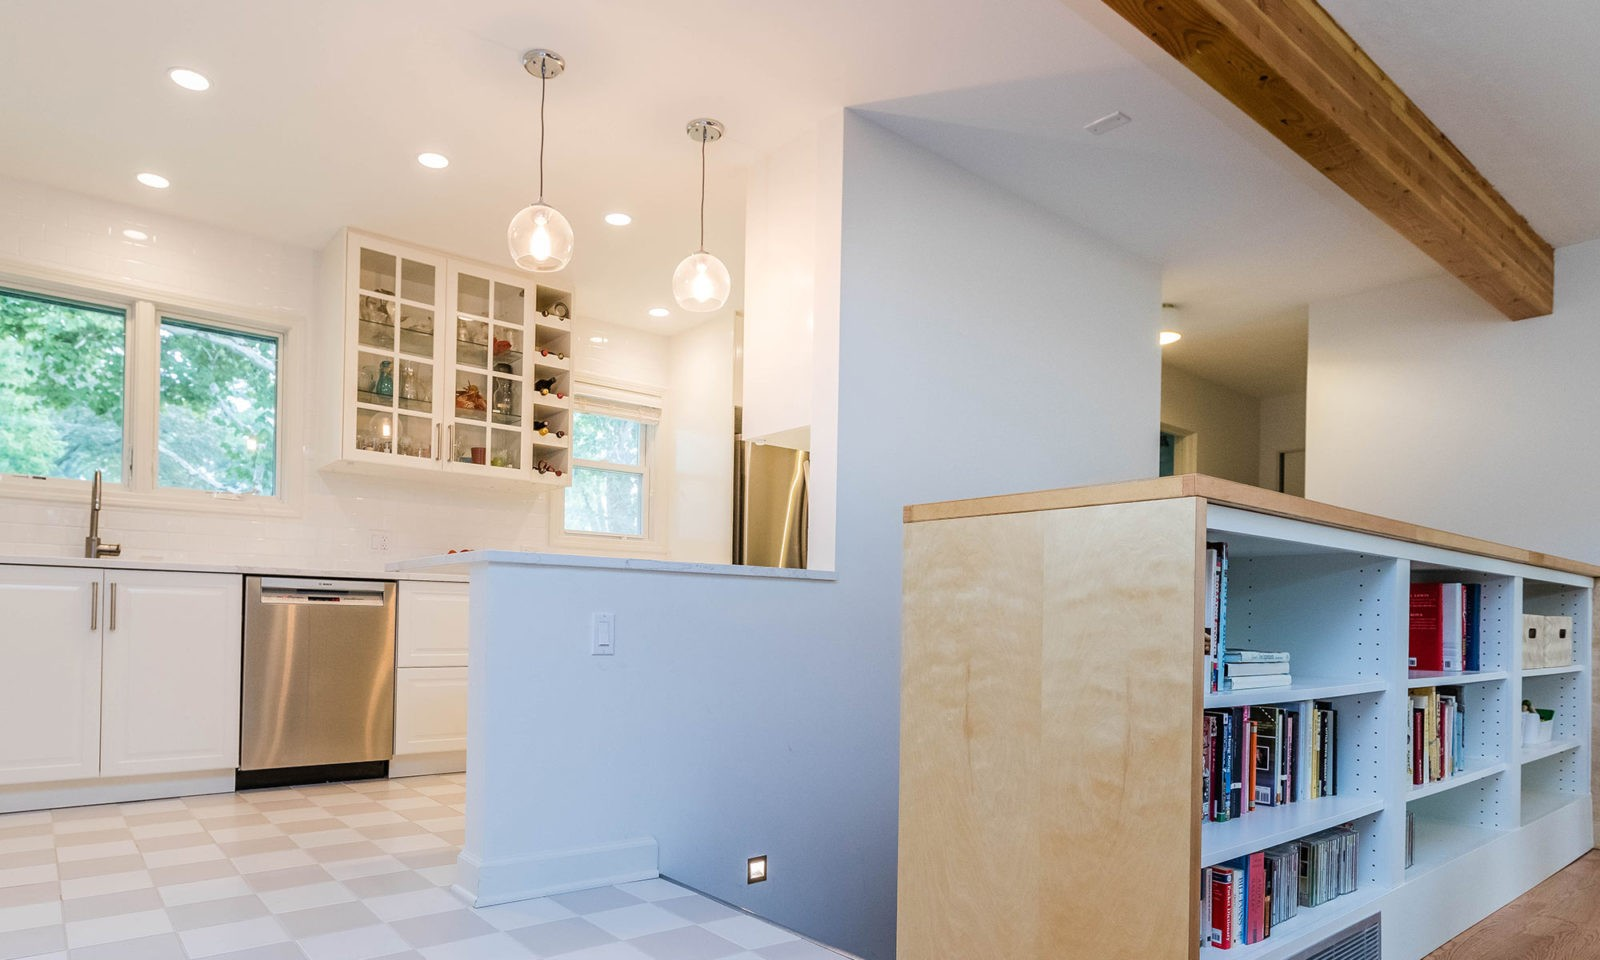 mid century modern ranch renovation and remodel view of stairs down to basement with white kitchen beyond